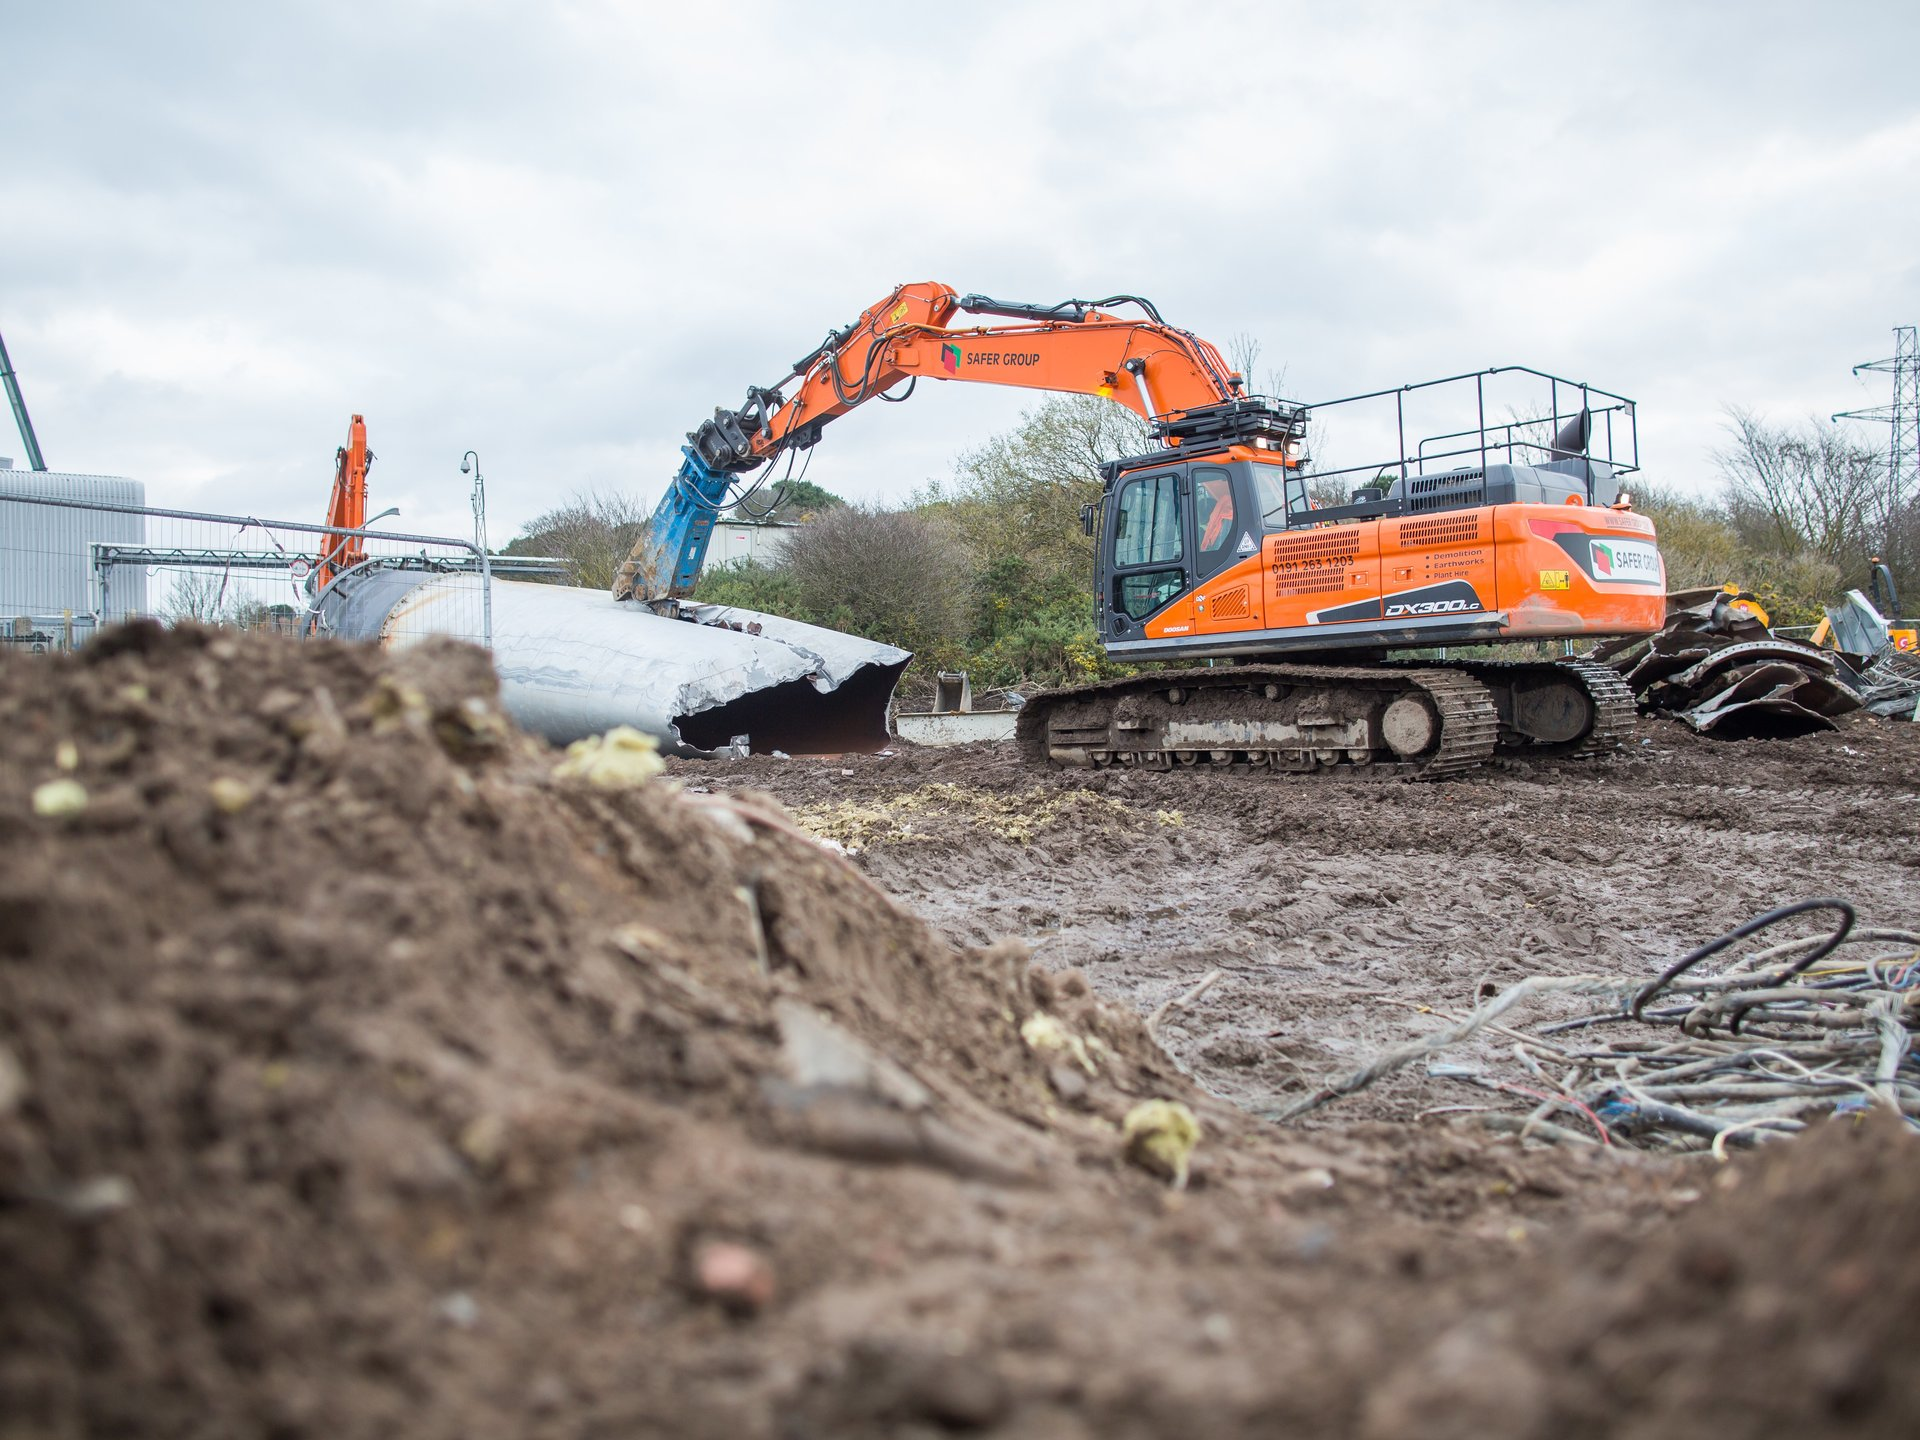 Photography of construction site in cumbria